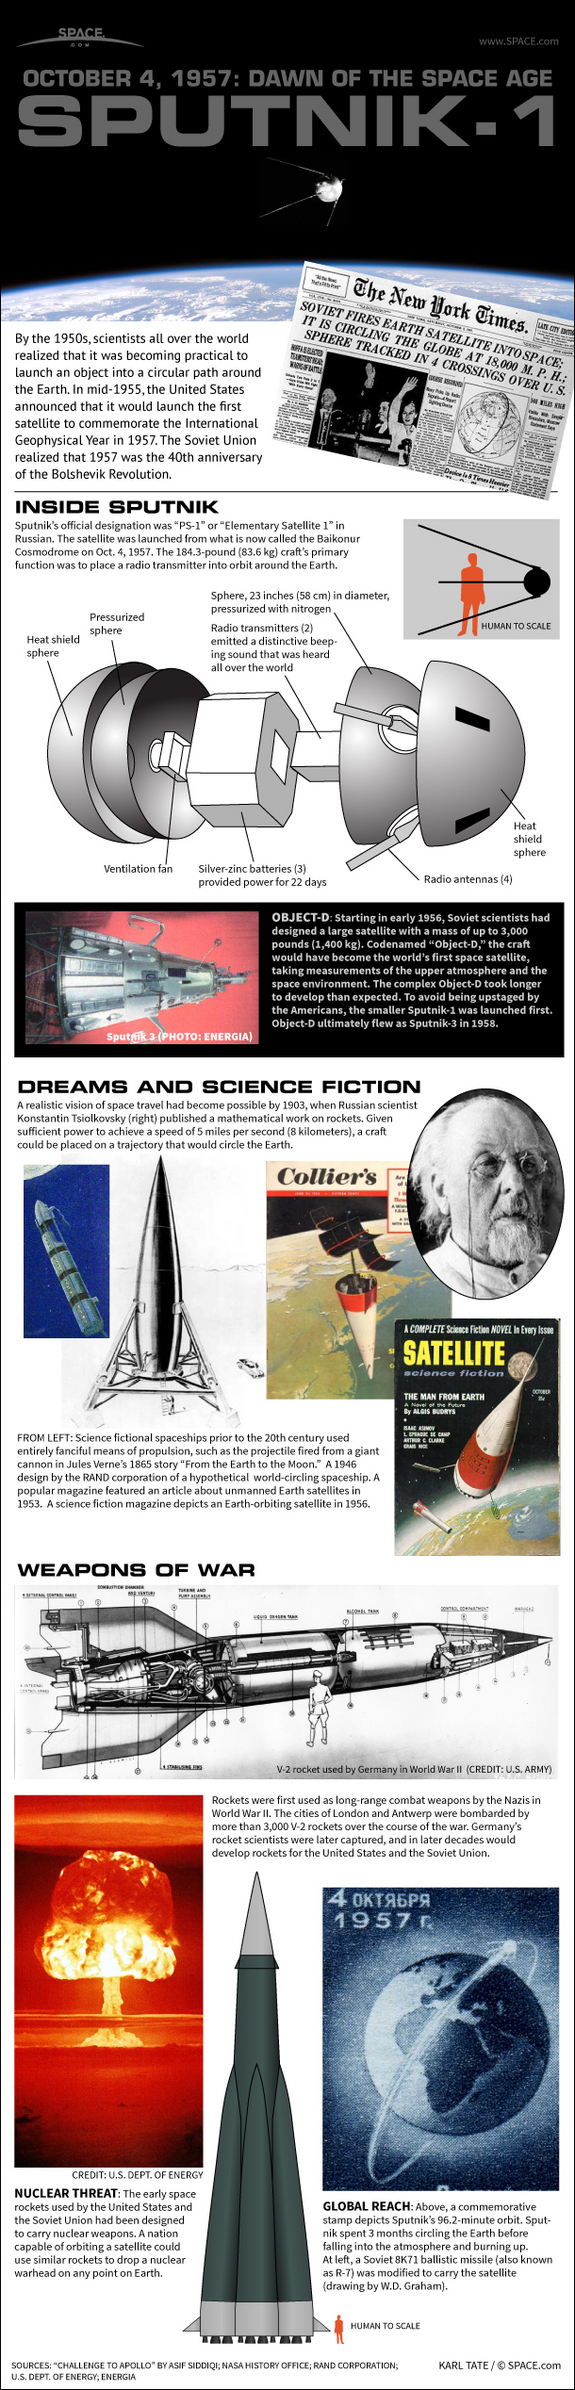 Find out how Russia launched the world's first satellite, Sputnik-1, in this SPACE.com infographic.